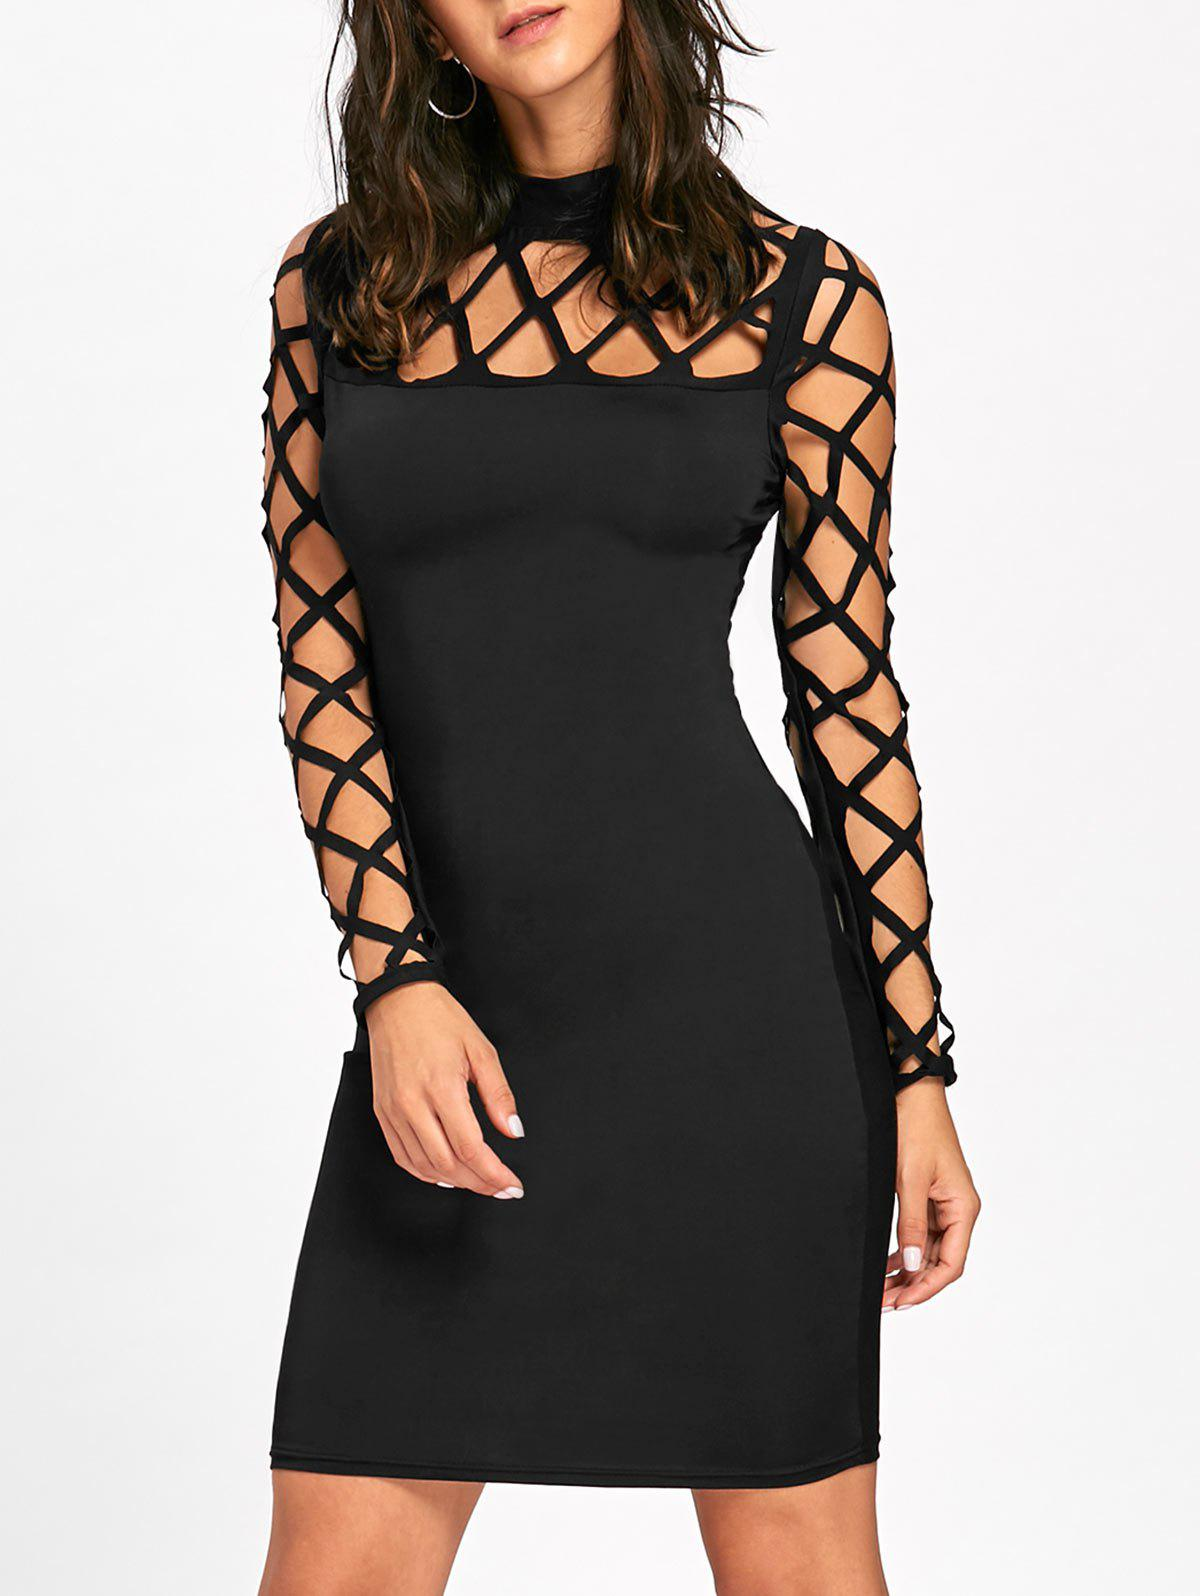 Cut Out Argyle Long Sleeve Bodycon Dress от Dresslily.com INT